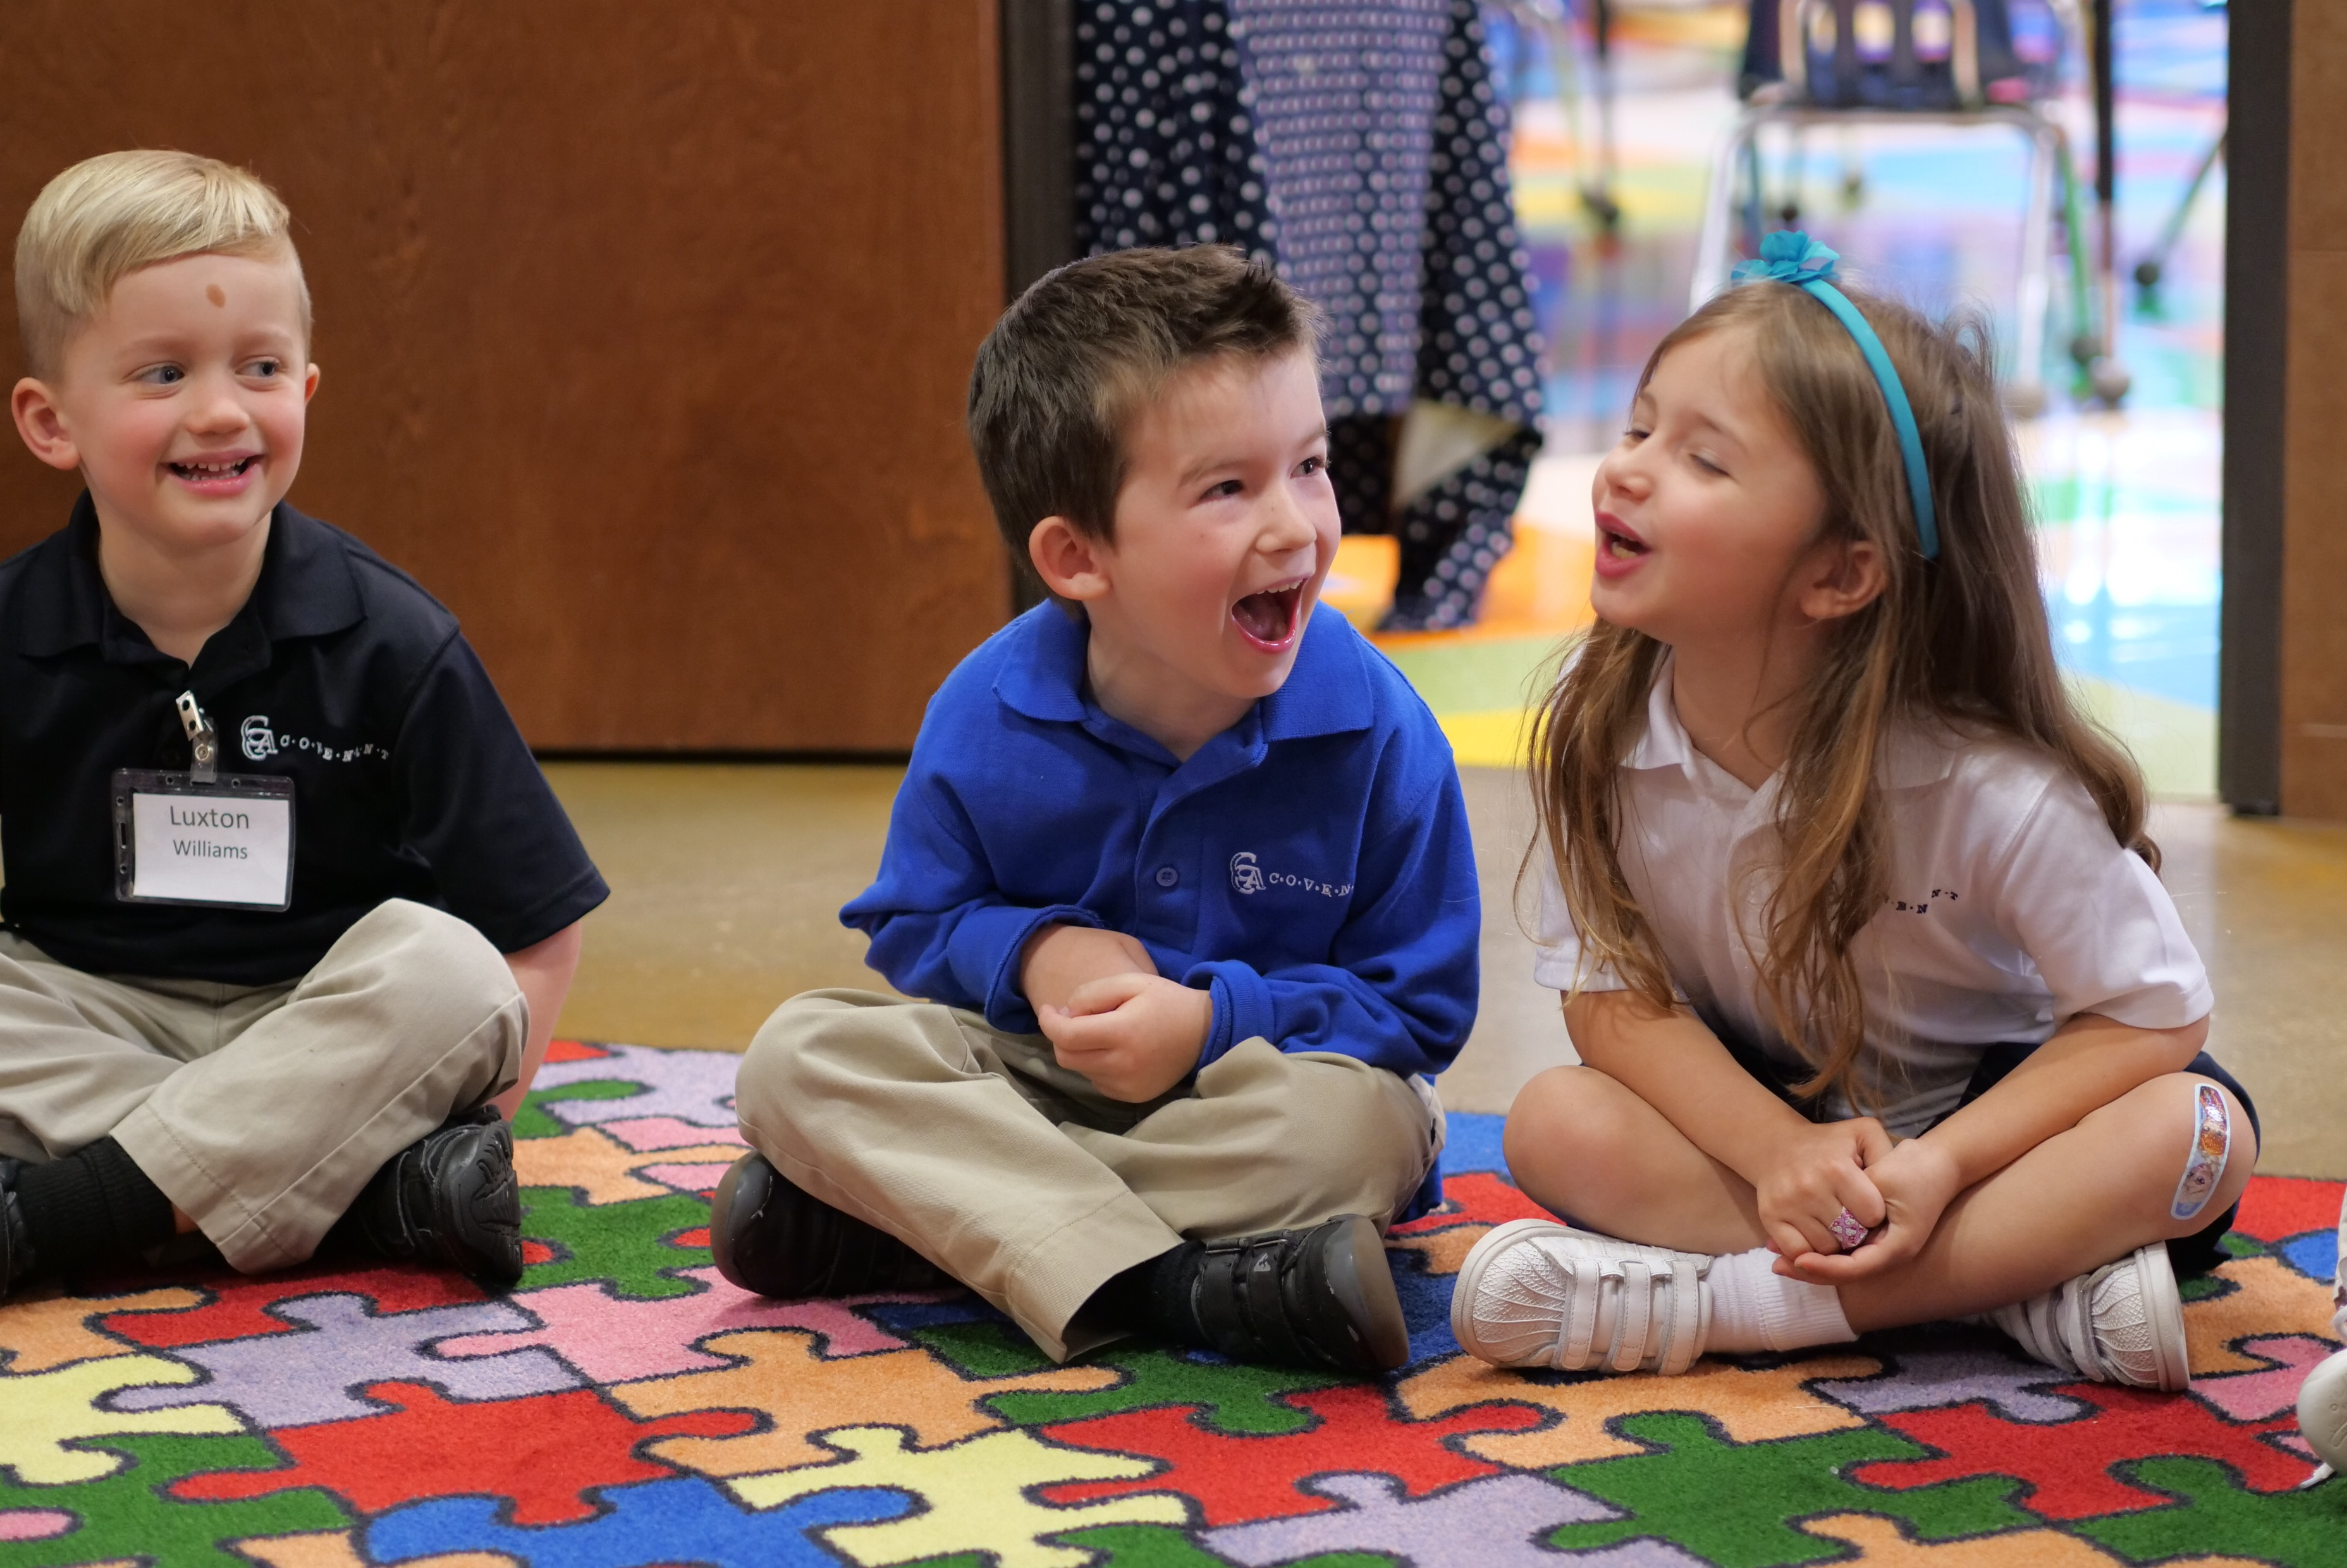 Off to a Great Start: Experience Early Education at Covenant Christian Academy